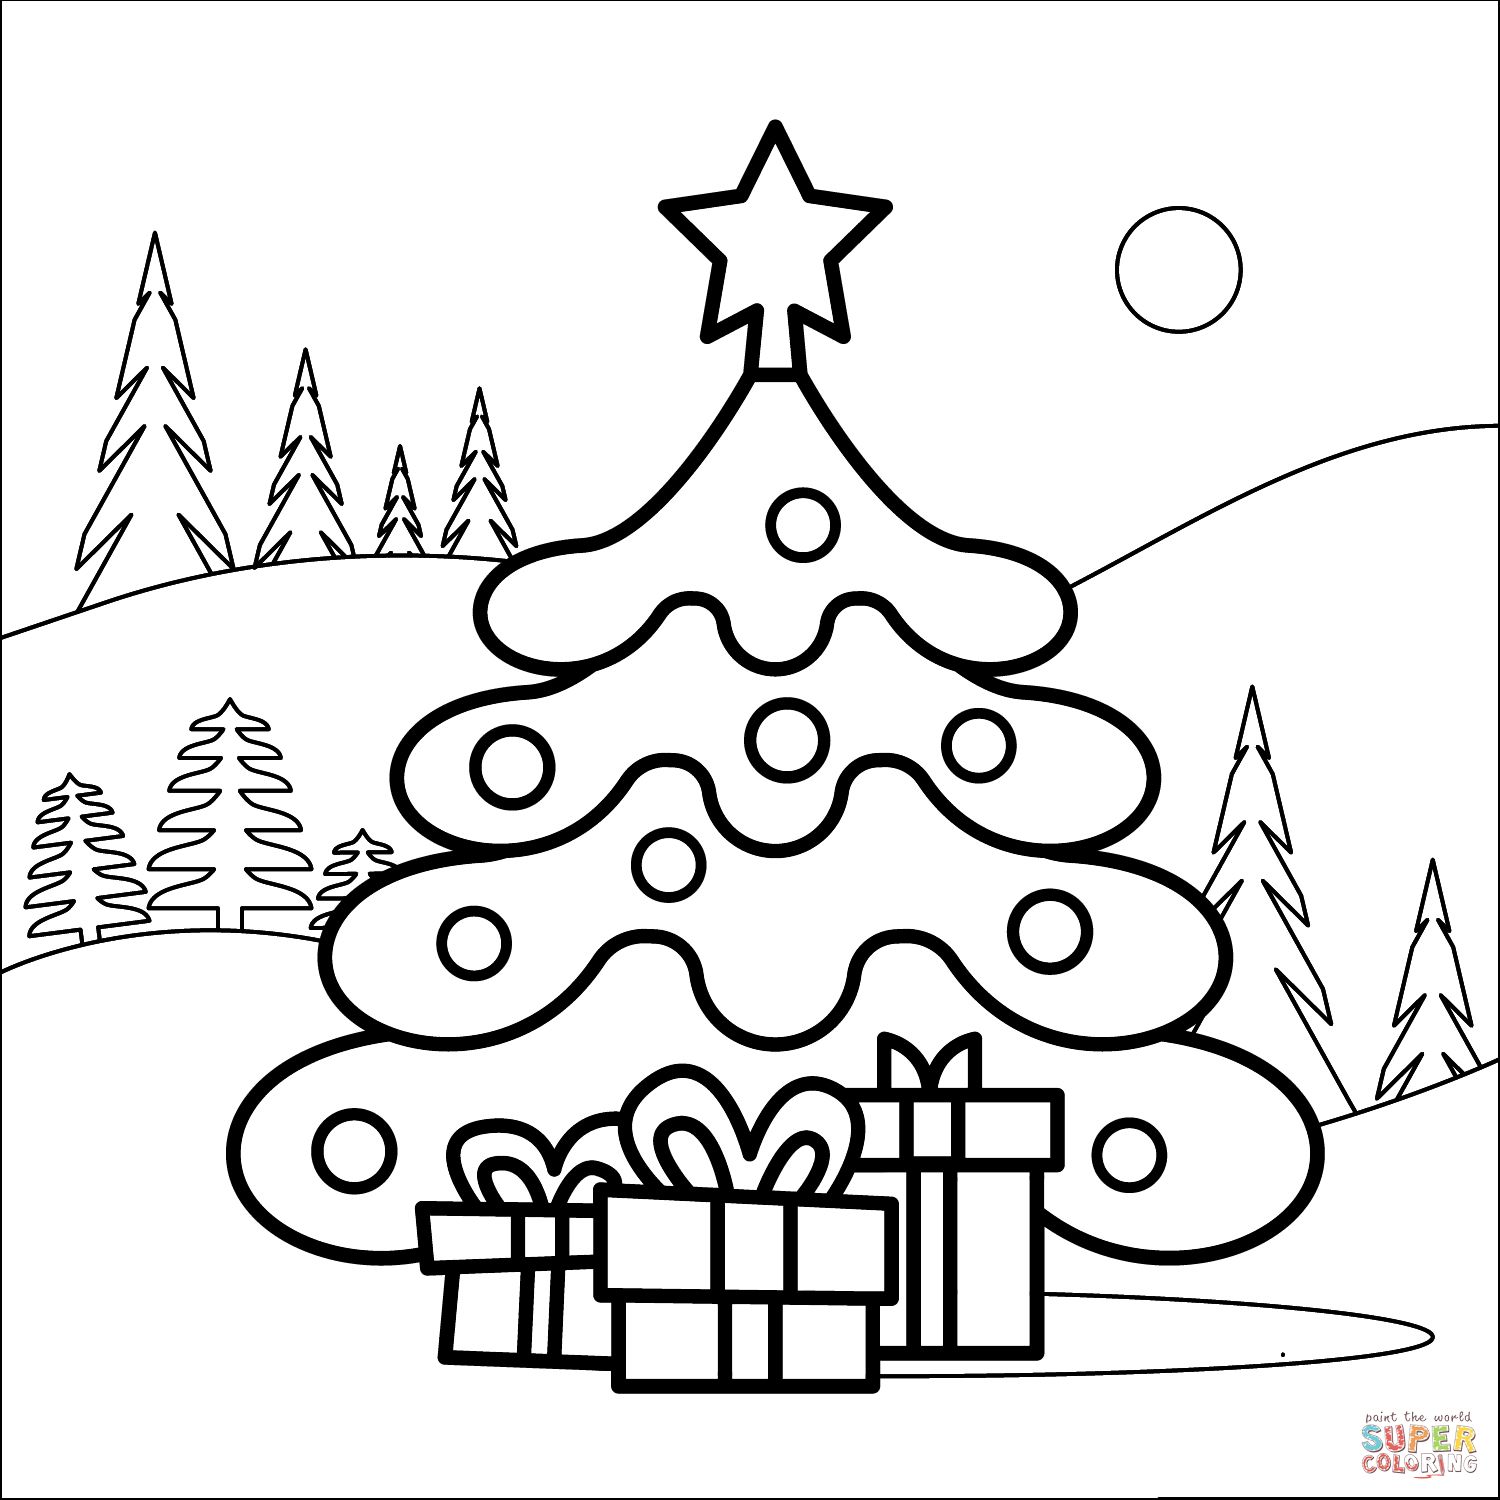 christmas tree coloring page printable redirecting to httpwwwsheknowscomparentingslideshow printable tree page christmas coloring